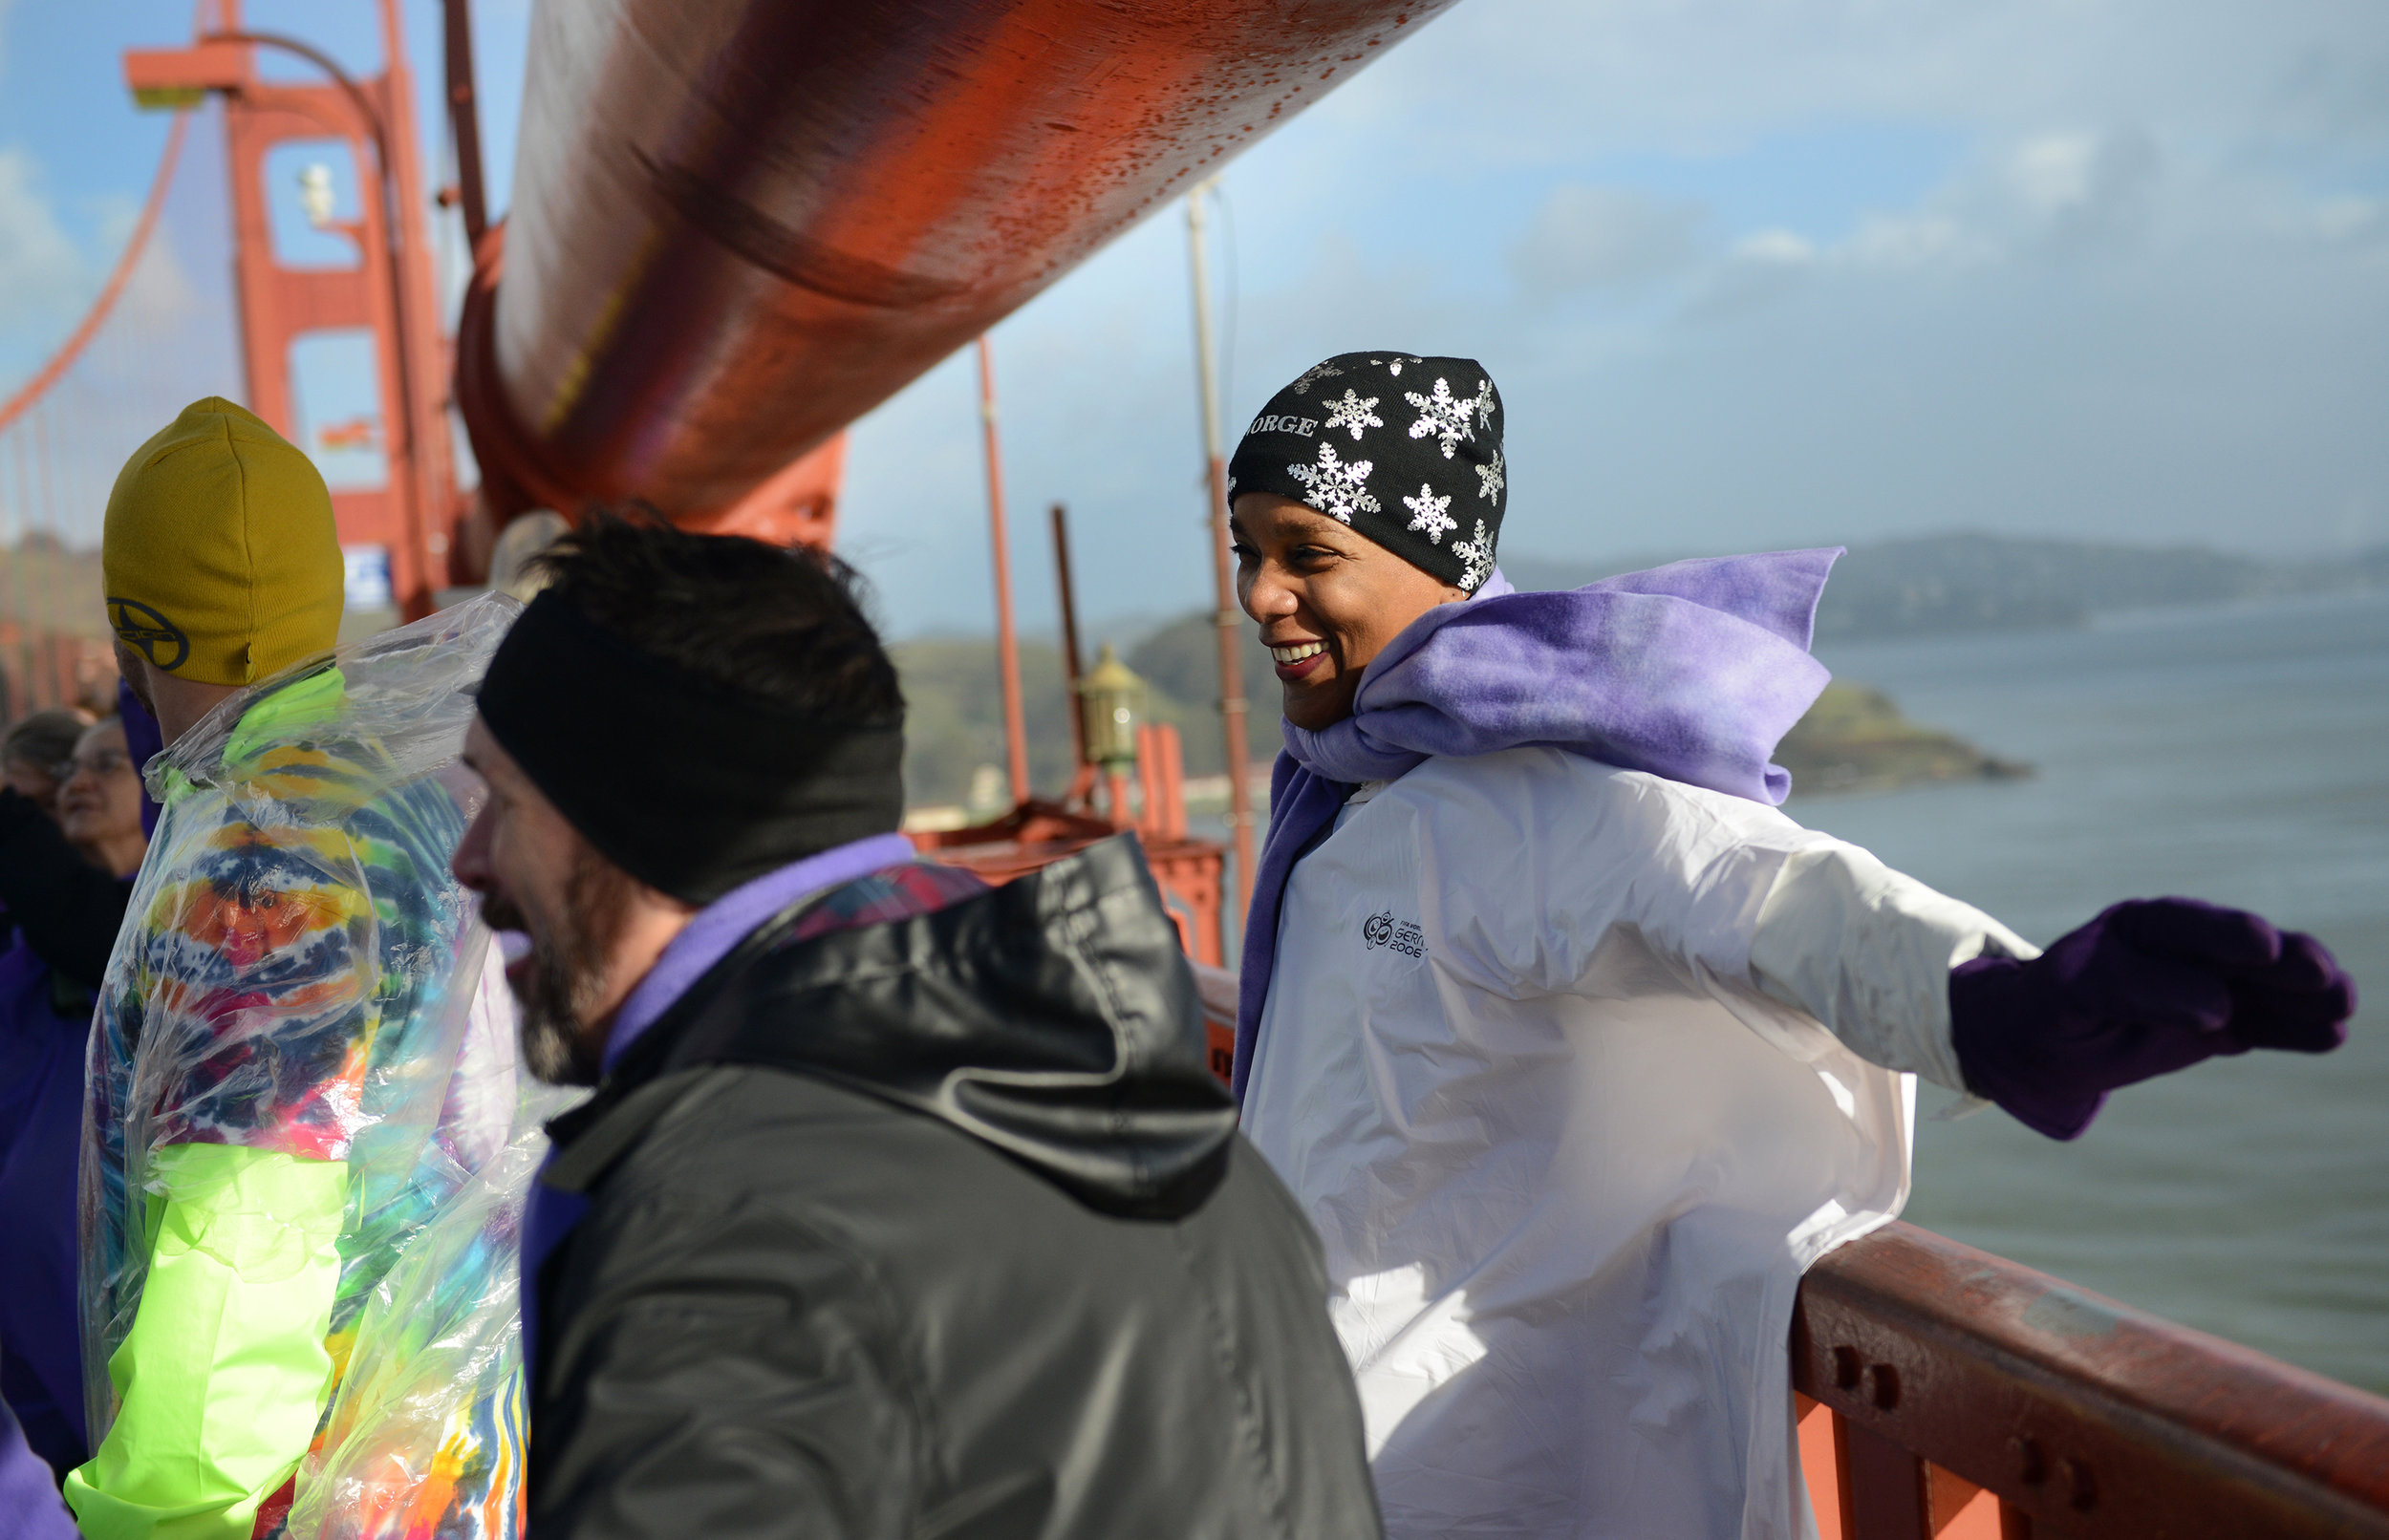 """June Solomon stretches her arms over the edge of the Golden Gate Bridge in San Francisco, Ca. on Friday, January 20, 2016 during a """"Bridge Together"""" demonstration. The event was coordinated by Satoriteller, a San Francisco art-based production studio to take place at the same time as the inauguration of President-elect Donald Trump to raise awareness for bullying and to take a stand against bullying rhetoric nationwide. Photo by David Andrews and is Property of Hoodline and Pixel Labs, Inc.  See more here ."""